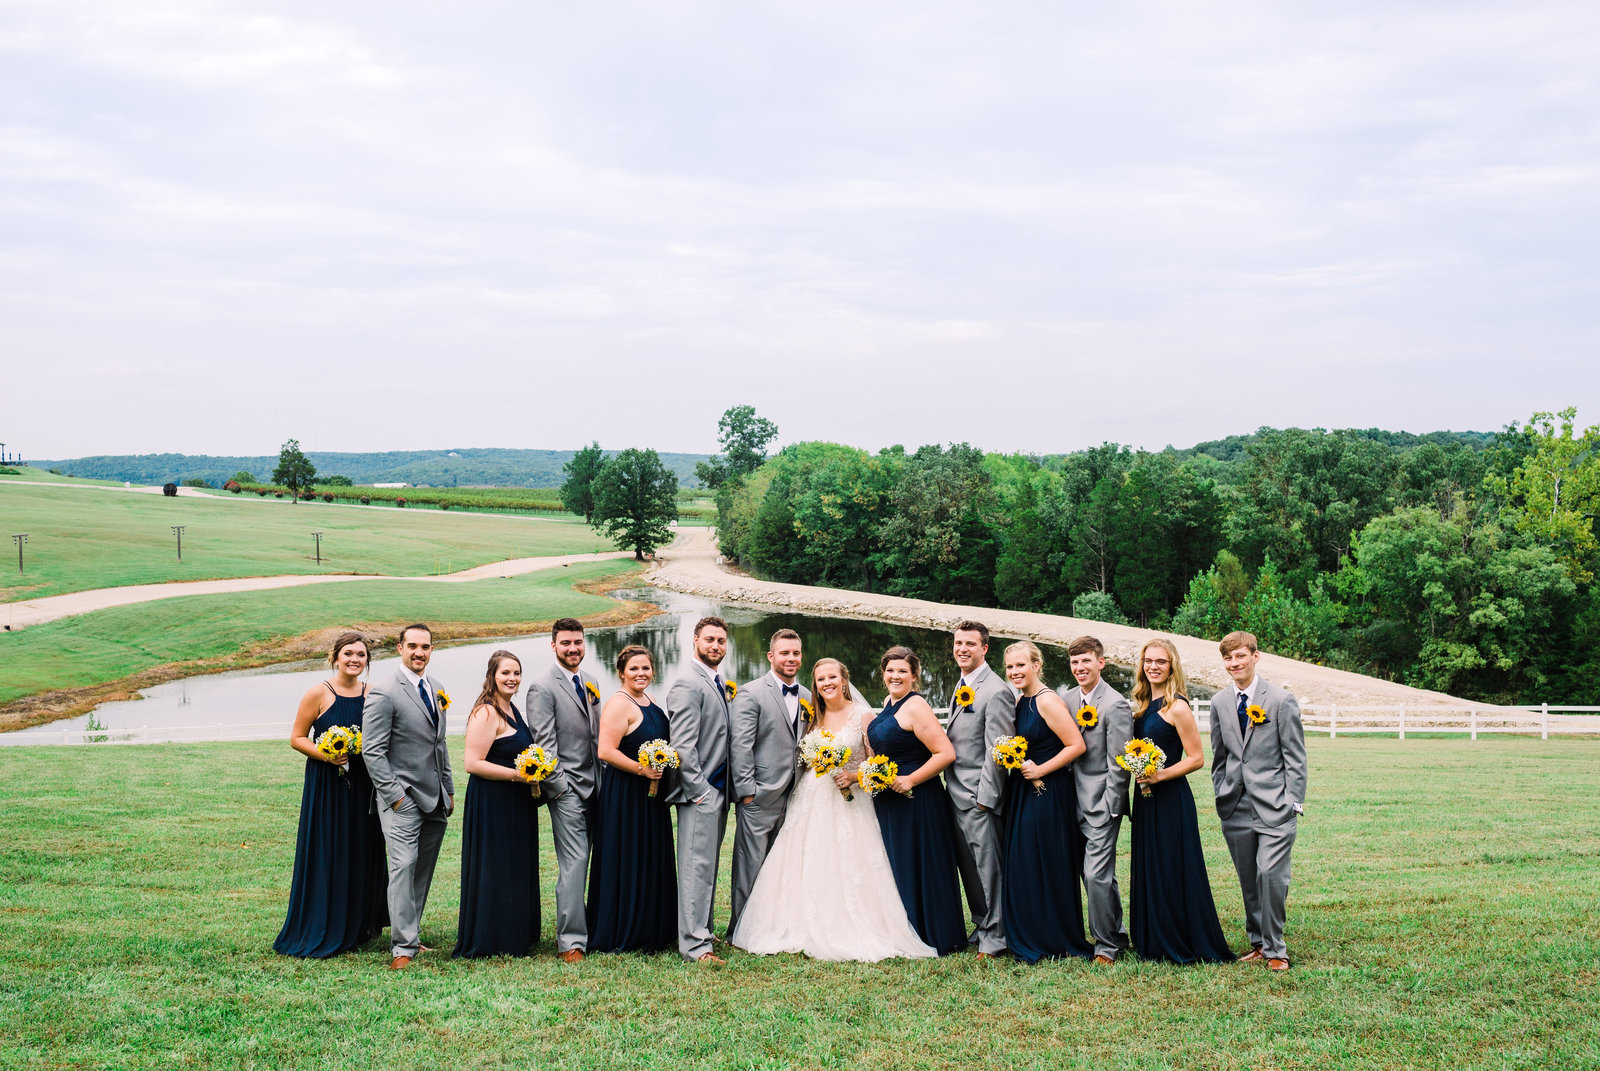 This wedding party wearing black and navy pose on a grassy hill with lake in the background at Chaumette Winery.